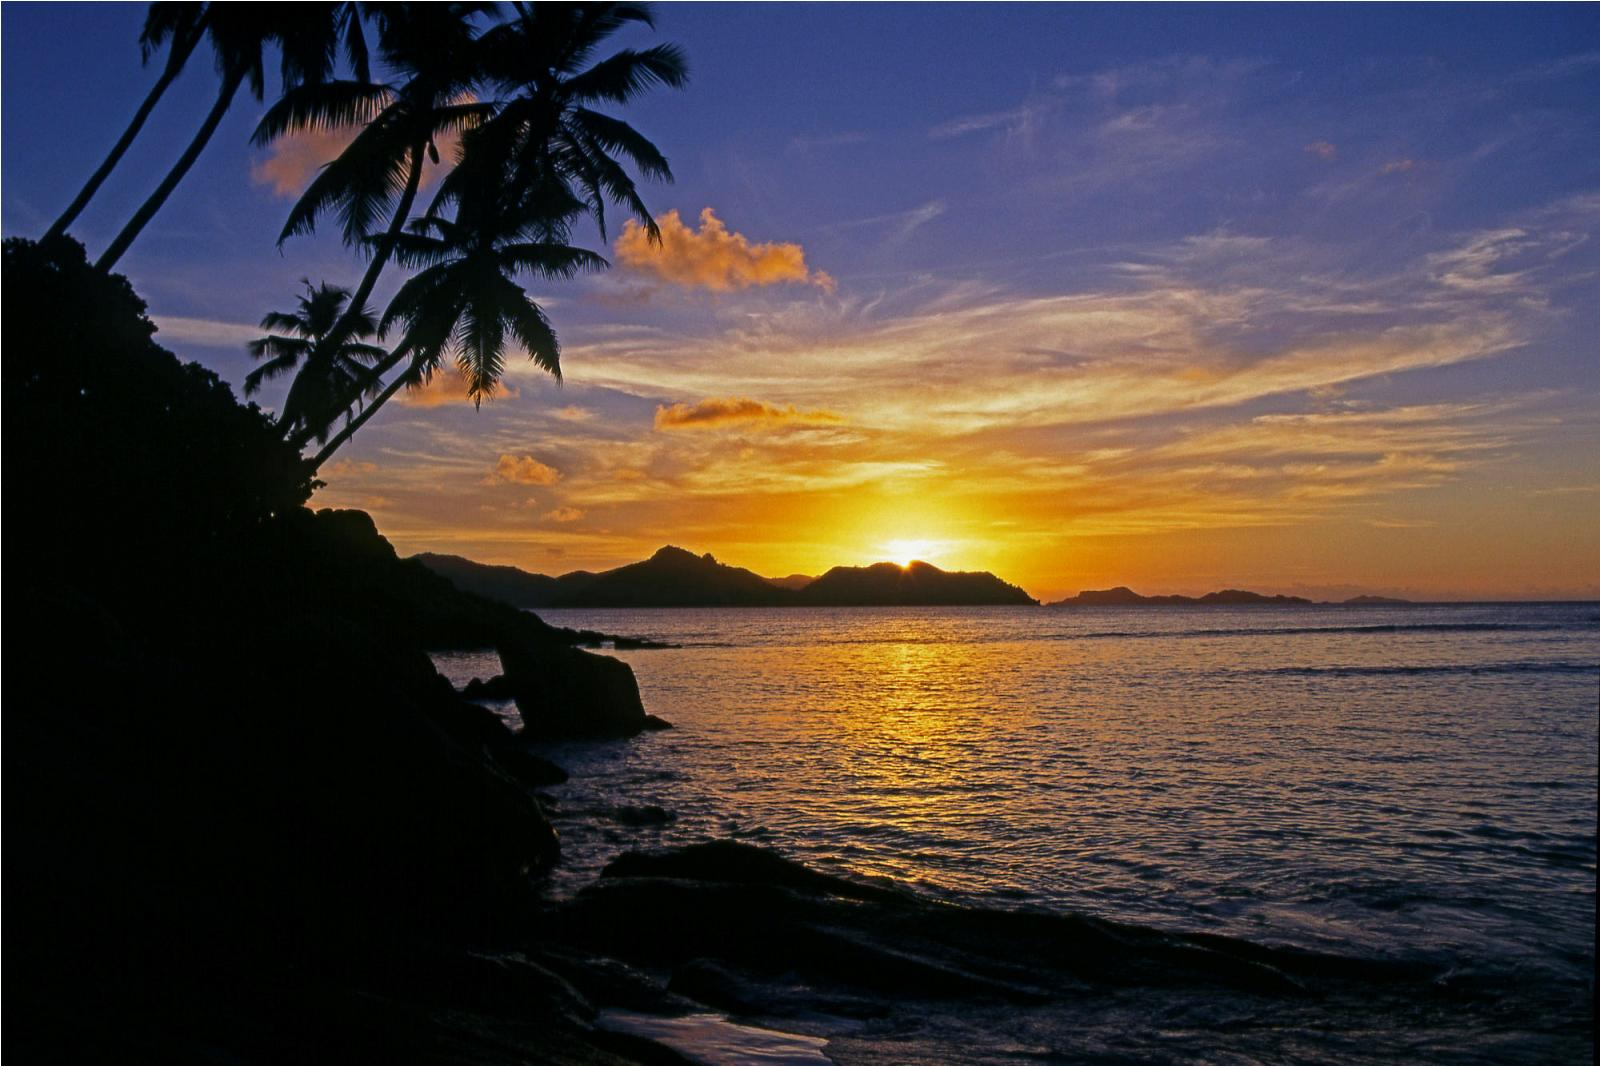 http://www.worldalldetails.com/article_image/seychelles_islands_africa_029016.jpg